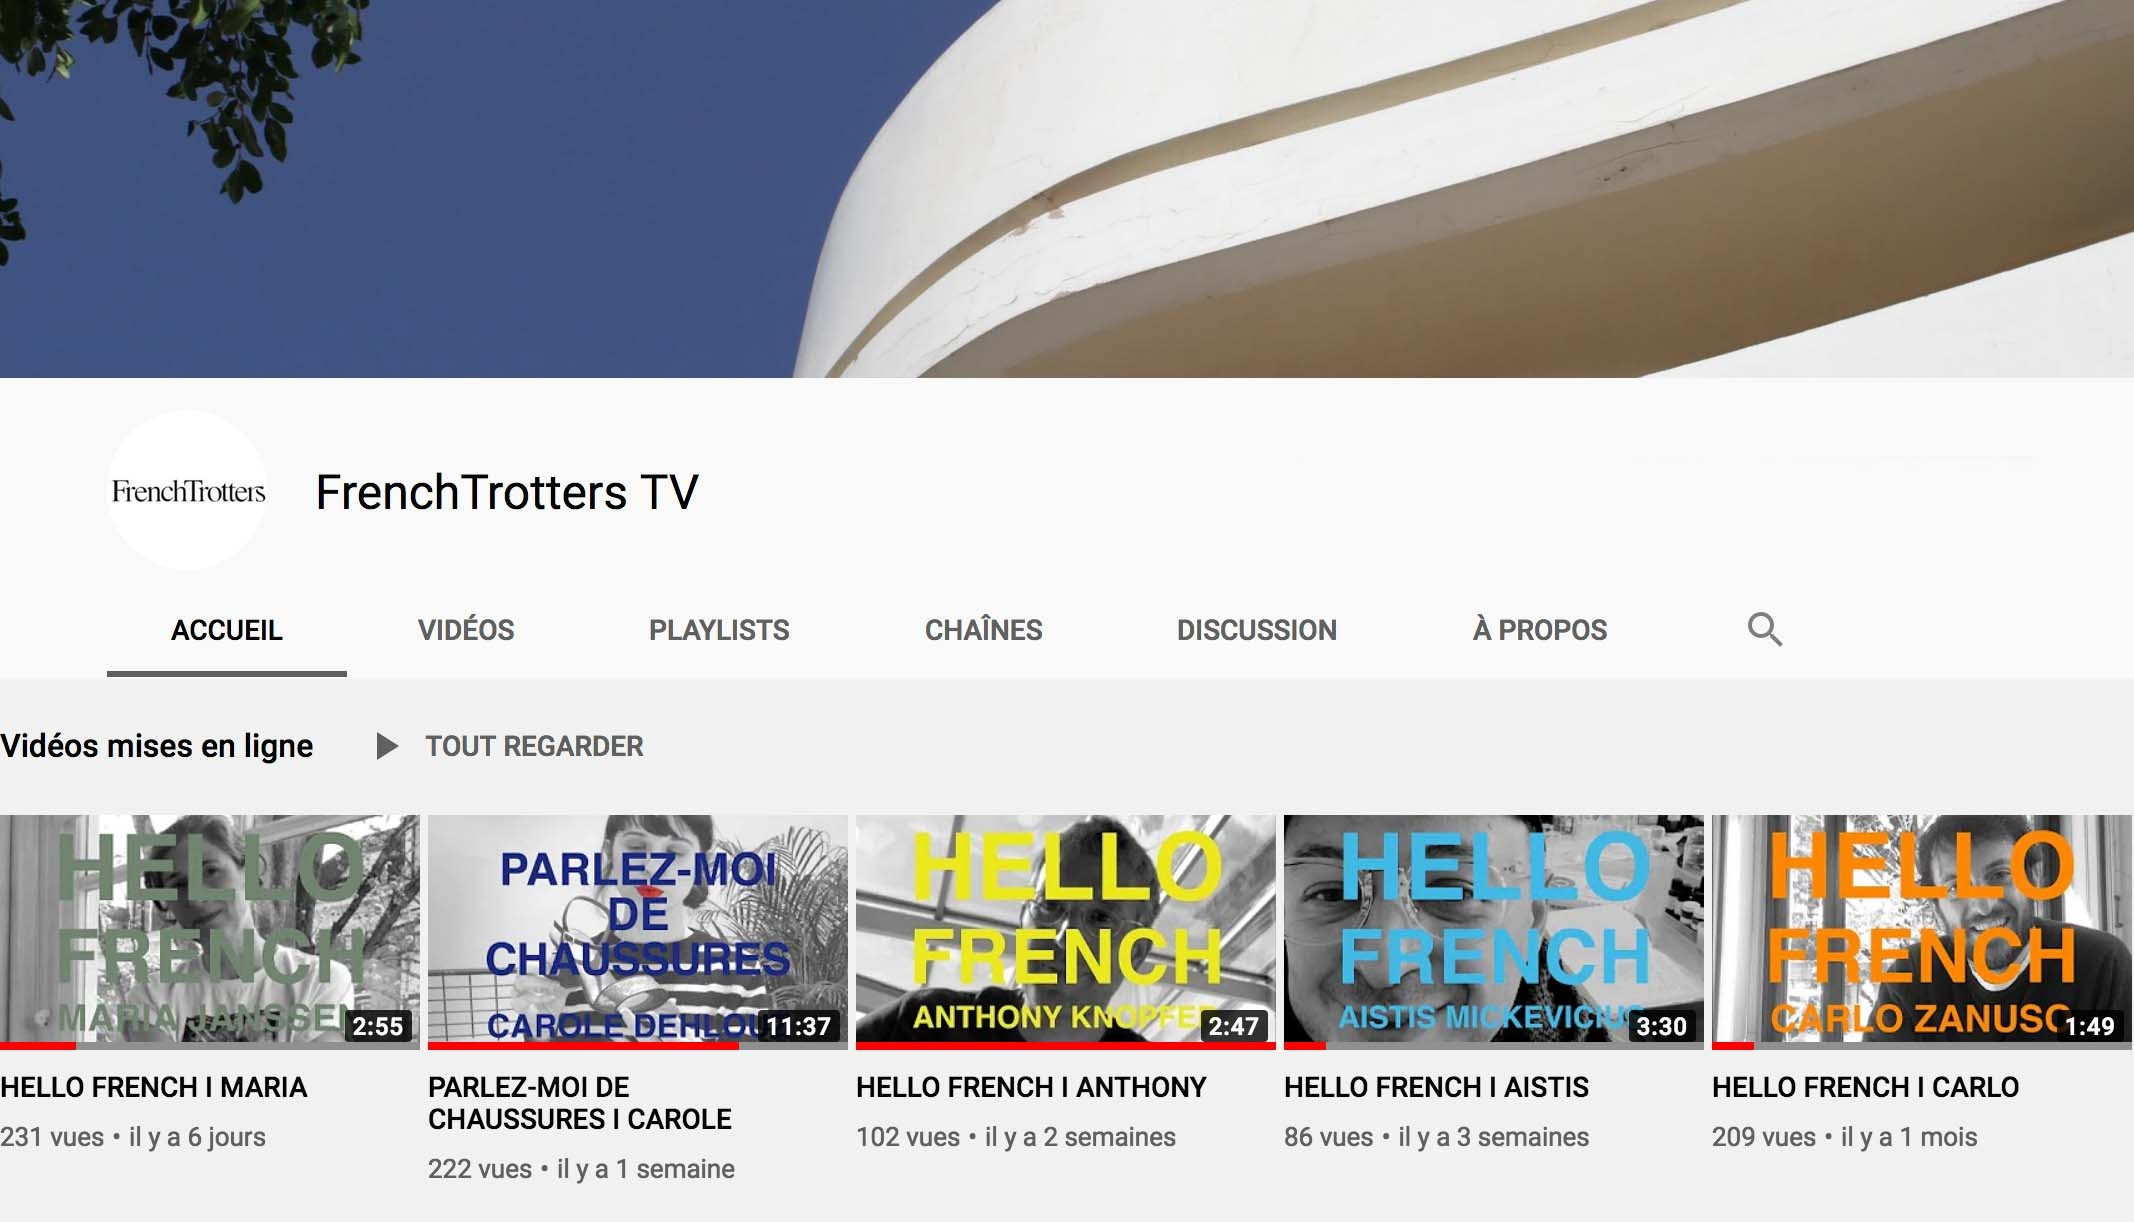 FRENCHTROTTERS TV